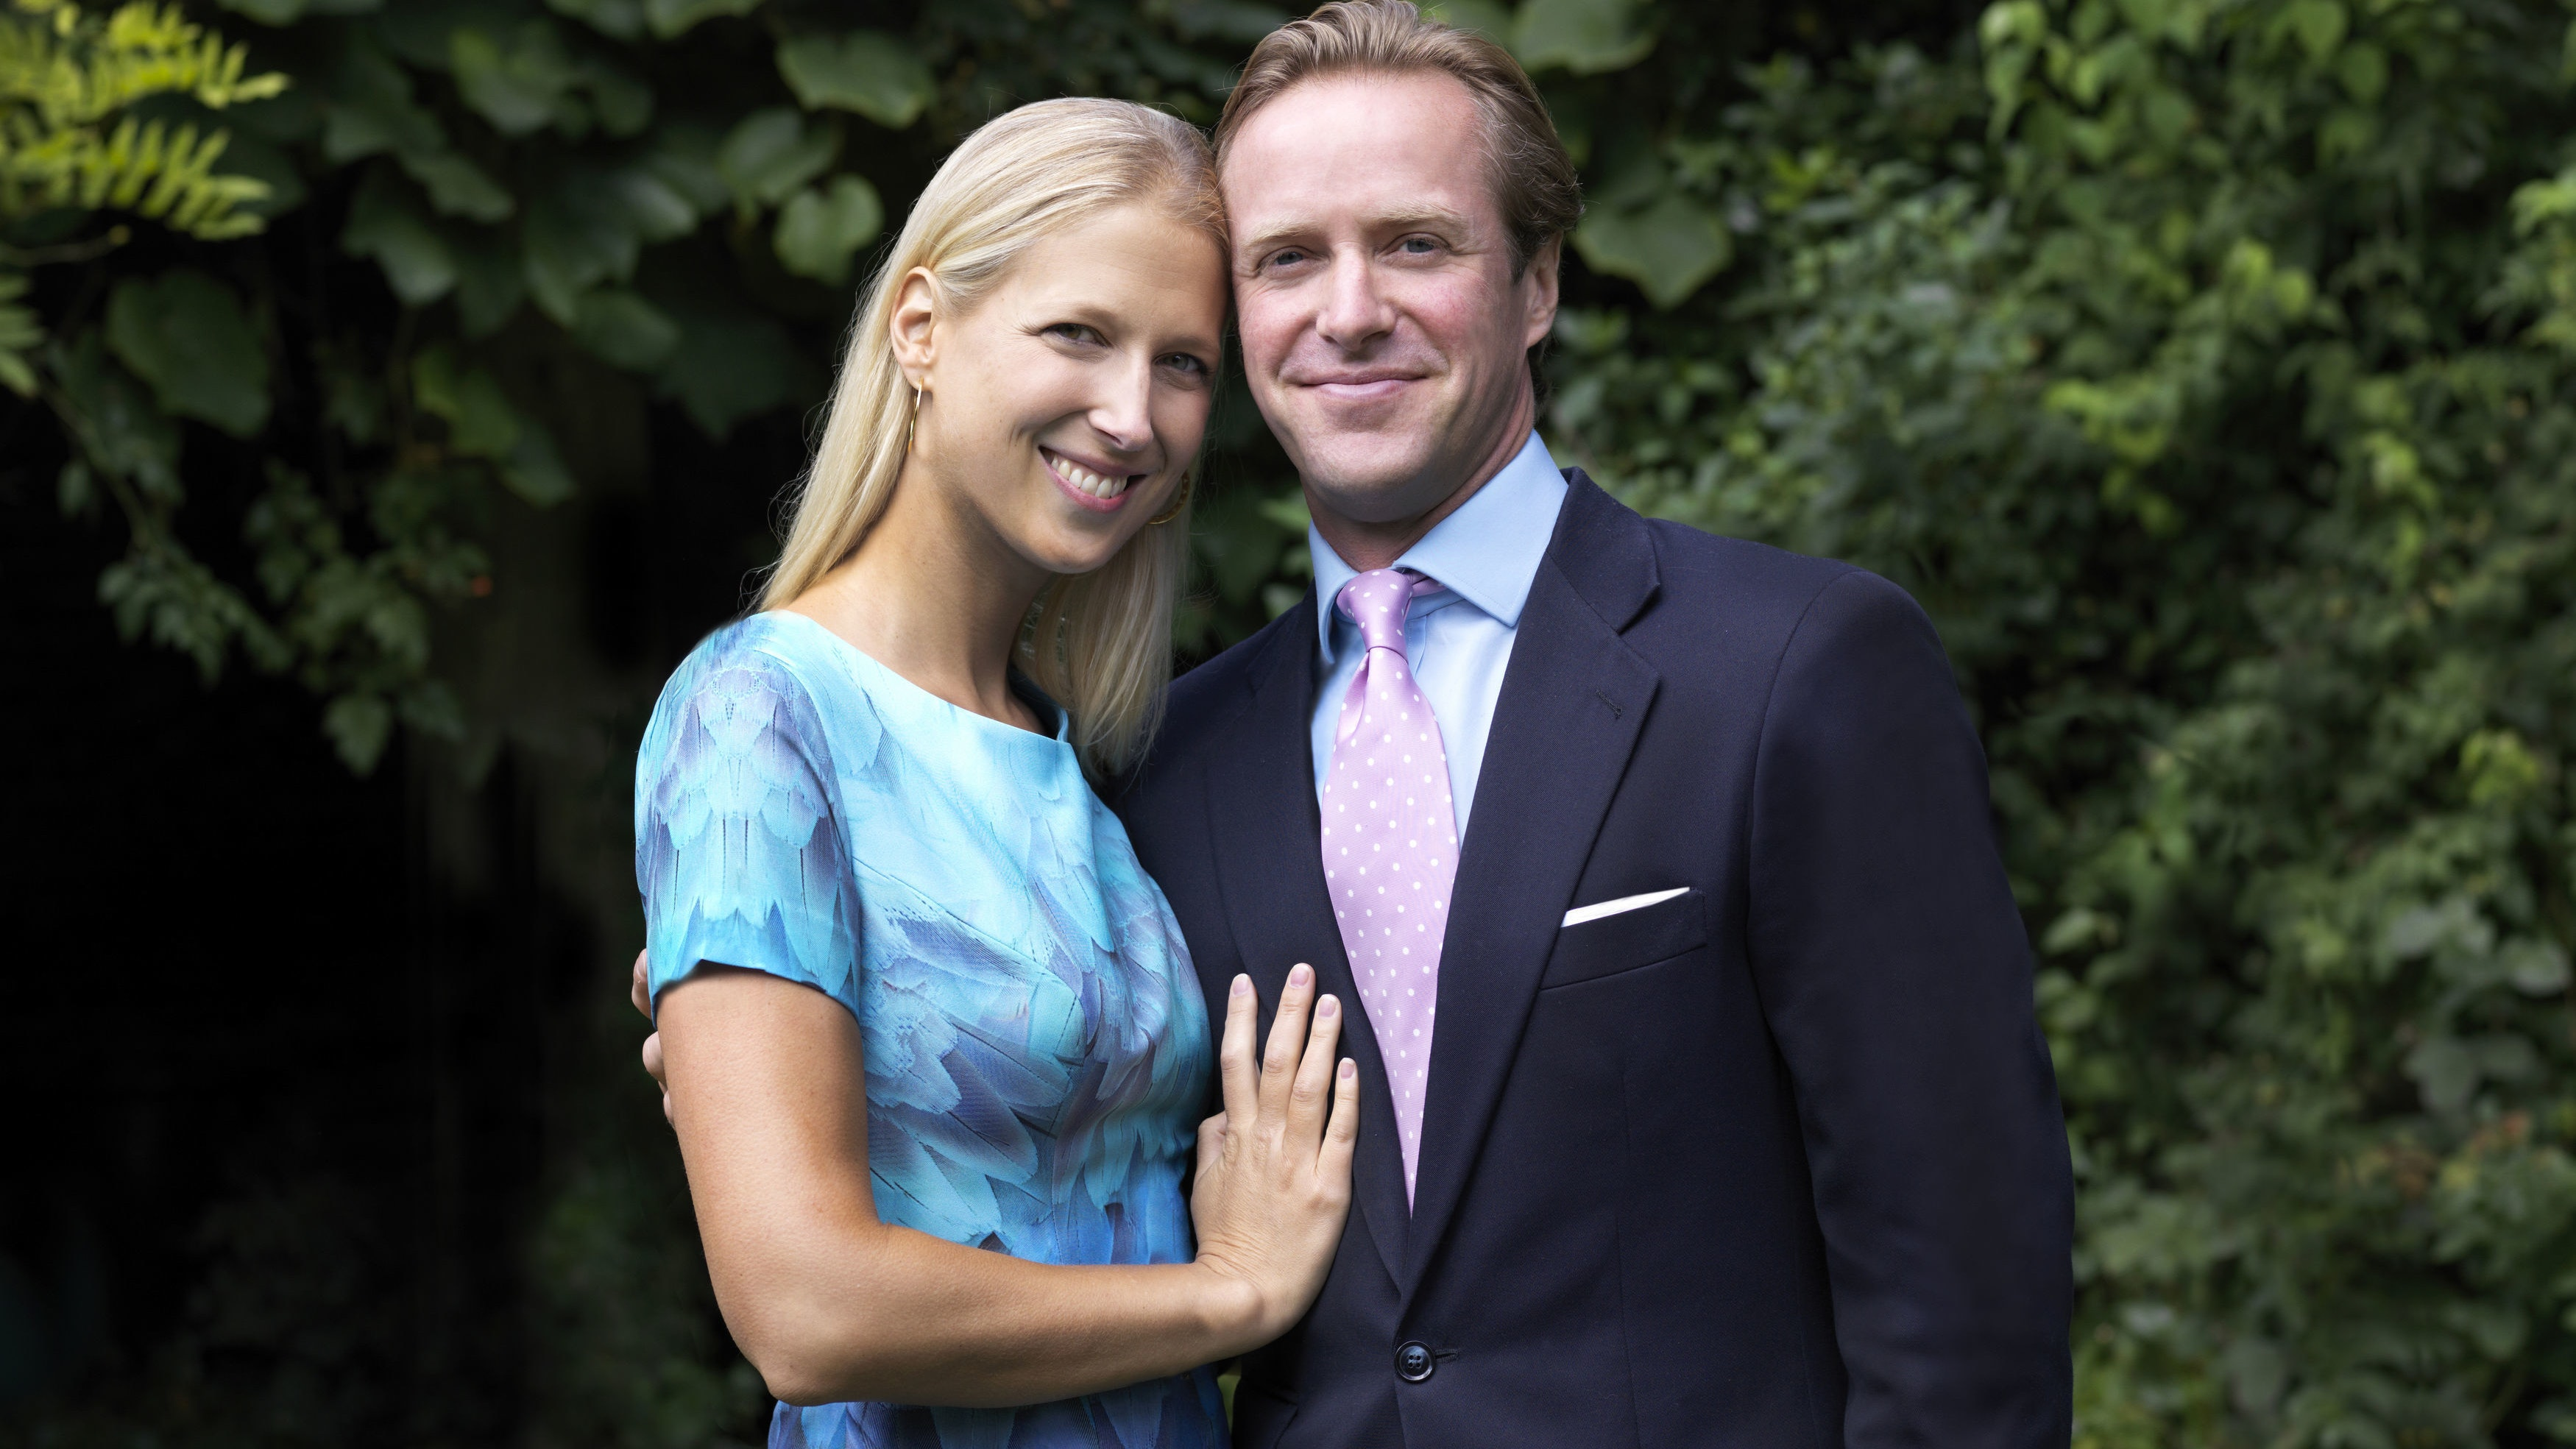 Royal family gathers for the wedding of Lady Gabriella Windsor